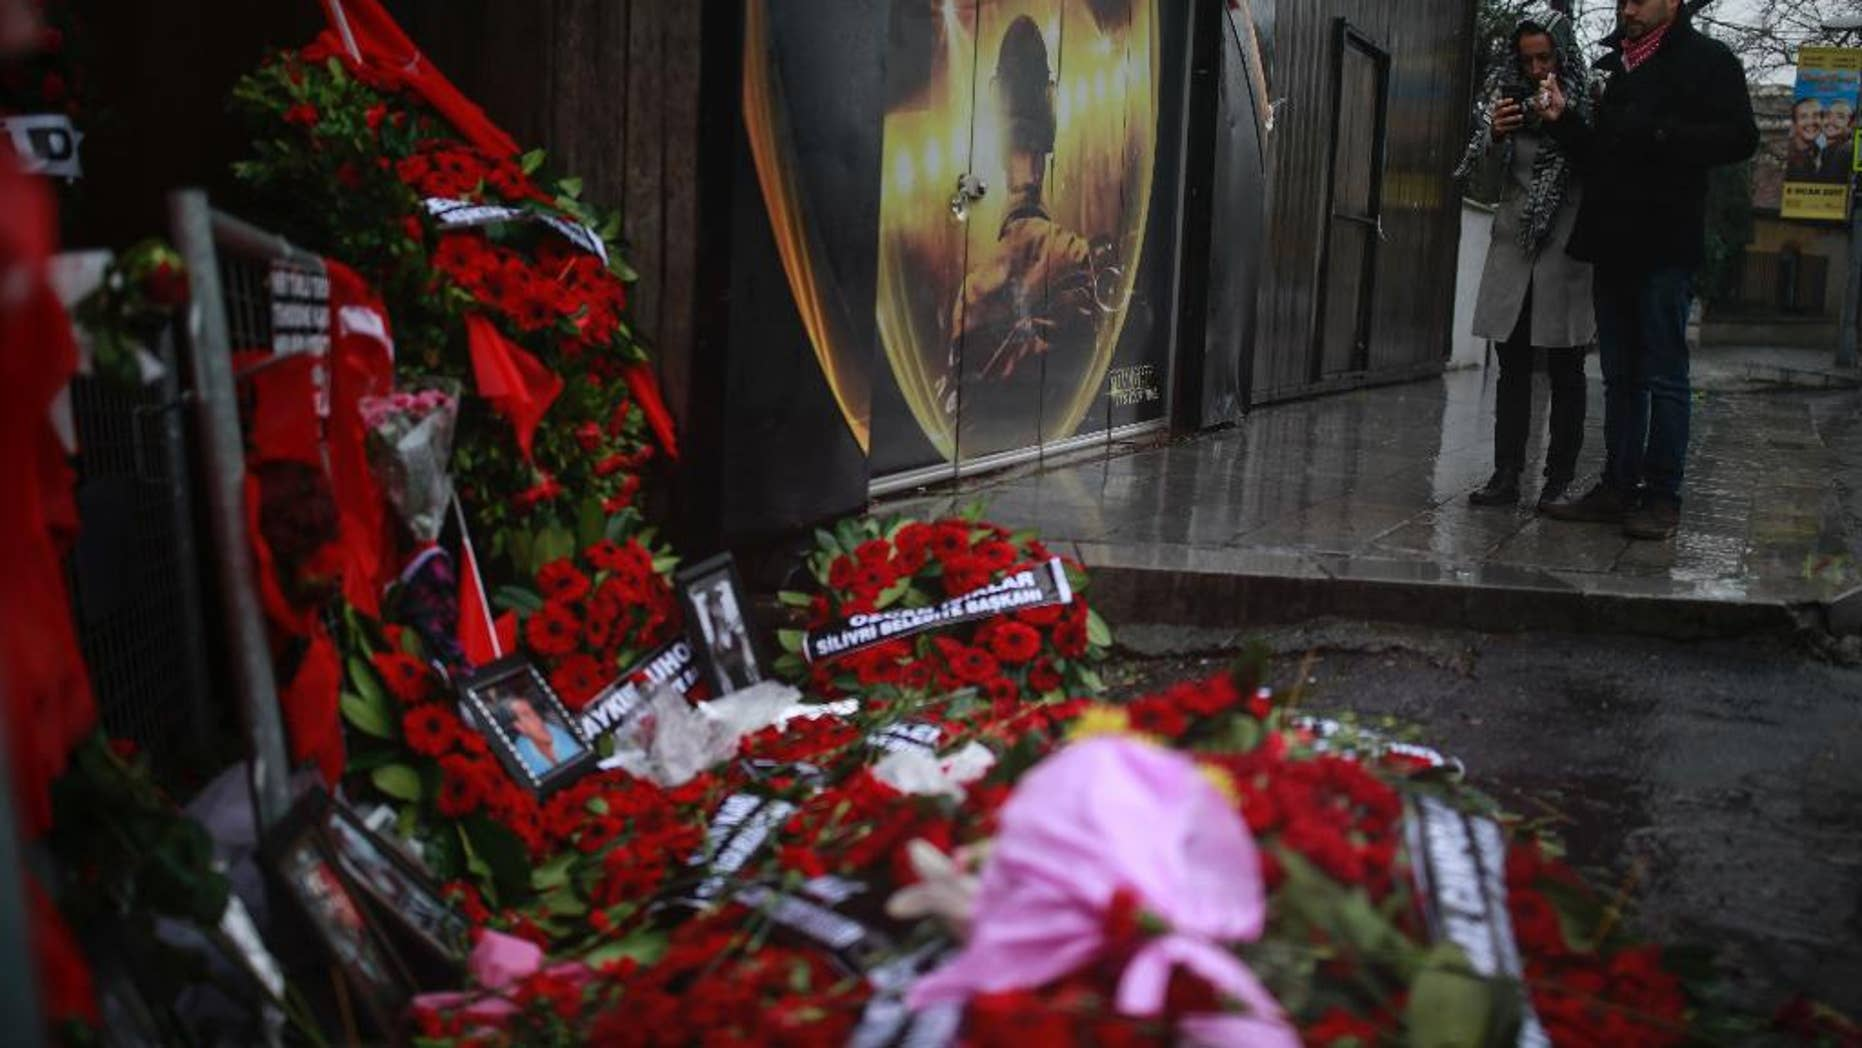 People look at floral tributes left outside the nightclub for the victims of the gunman attack, in Istanbul, Thursday, Jan. 5, 2017.  Police on Thursday conducted more raids in their hunt for the gunman that killed 39 people at an Istanbul nightclub, detaining several people at a housing complex in the city's outskirts, the state-run news agency reported. (AP Photo/Emrah Gurel)